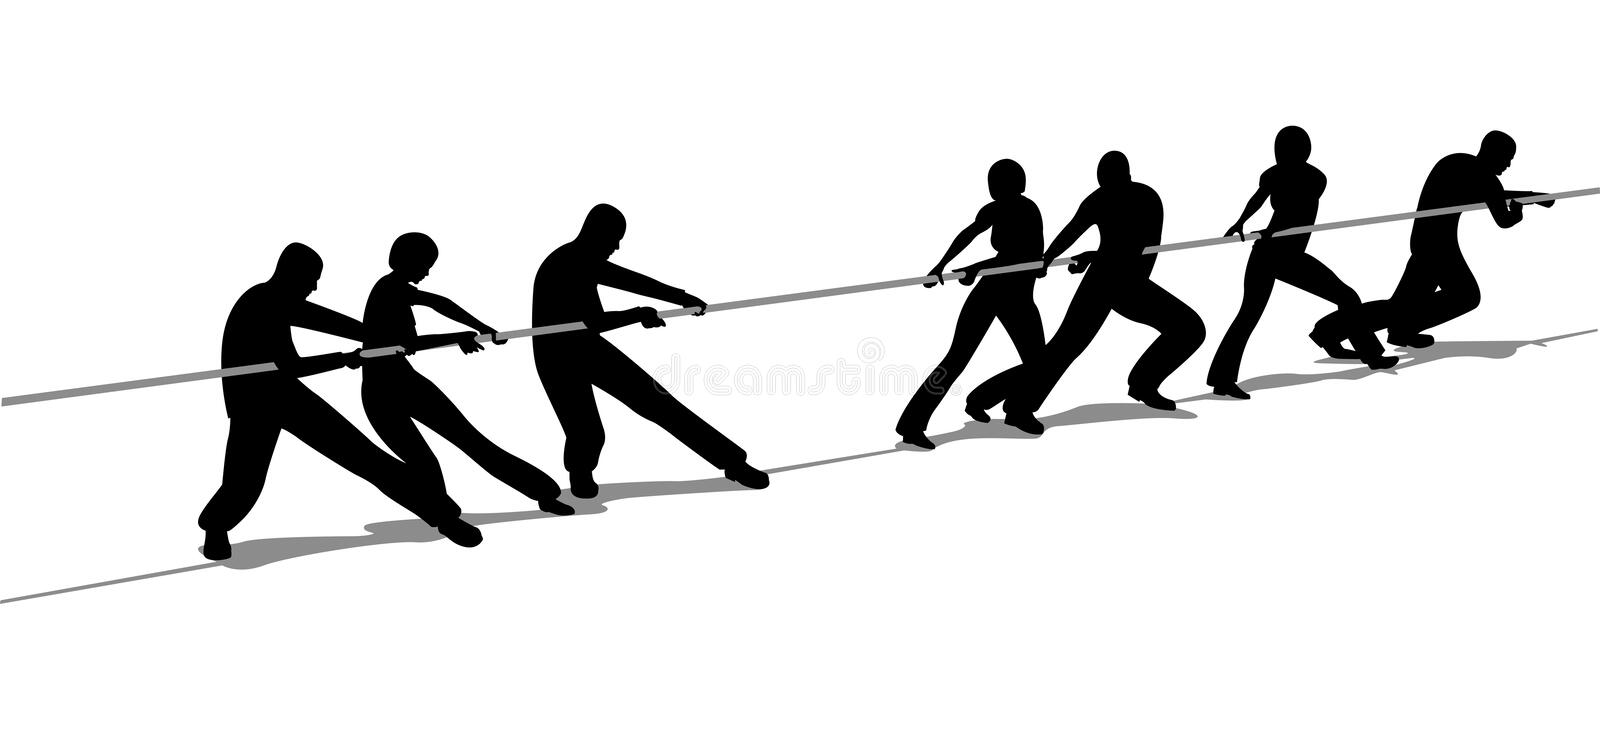 Tug-of-war people silhouette royalty free illustration